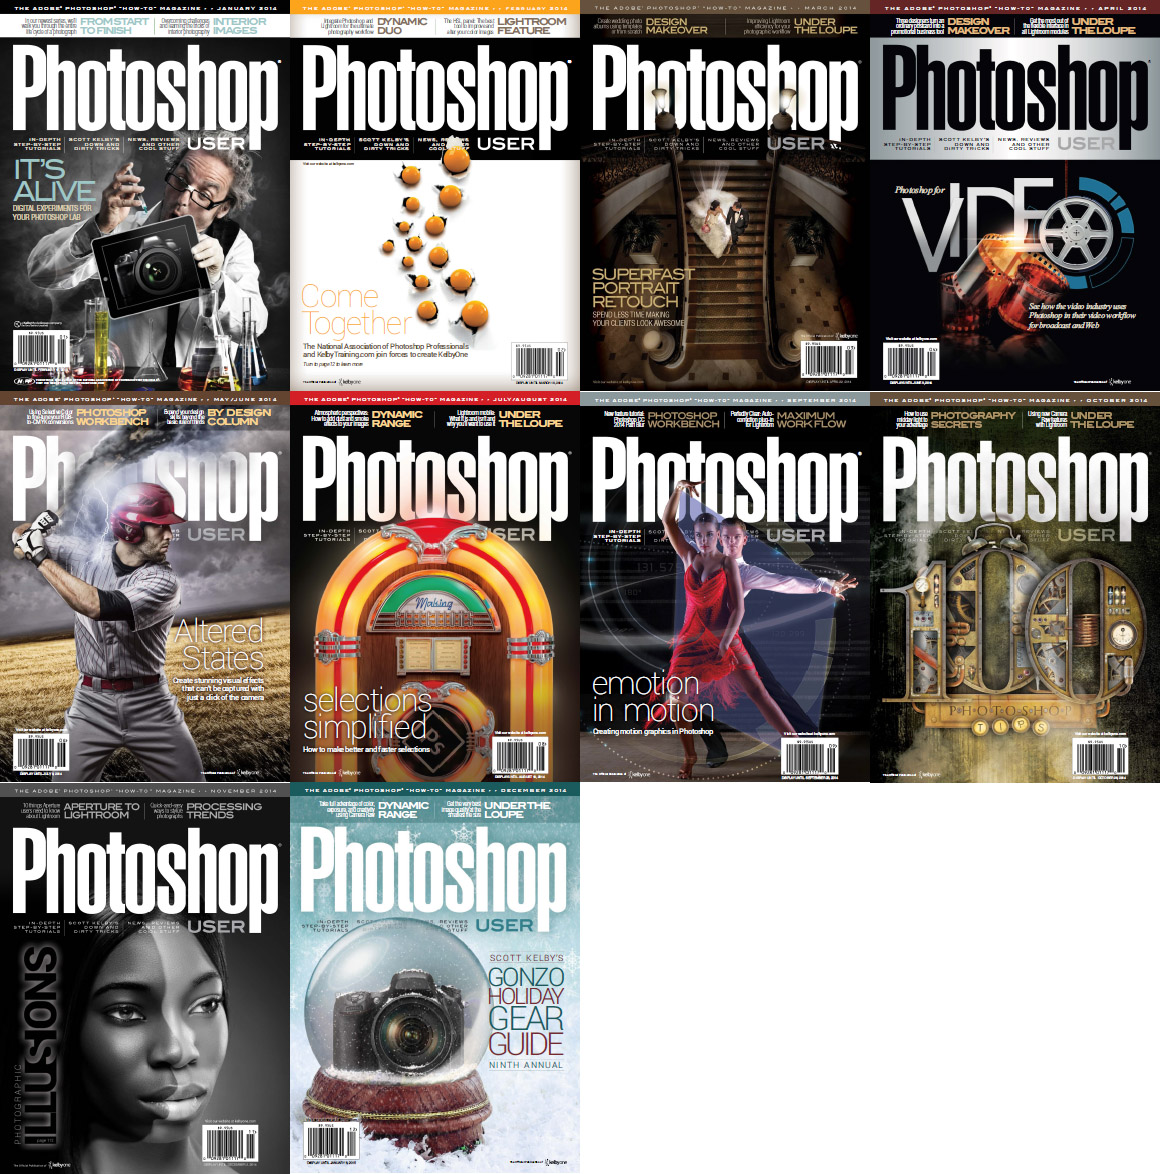 Photoshop User Magazine - Full Year 2014 Issues Collection